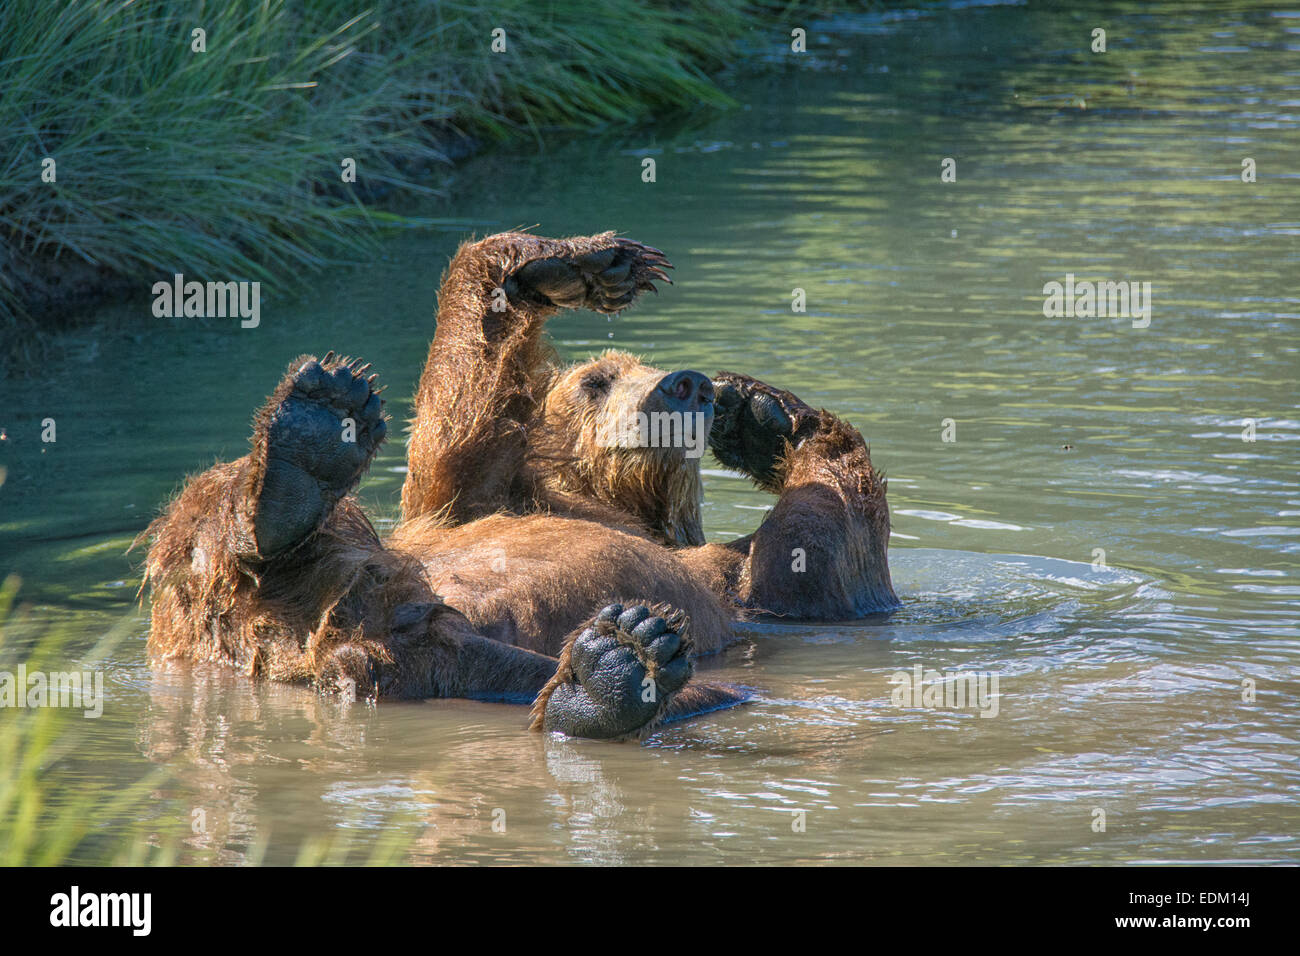 adult-grizzly-bear-ursus-arctos-cooling-